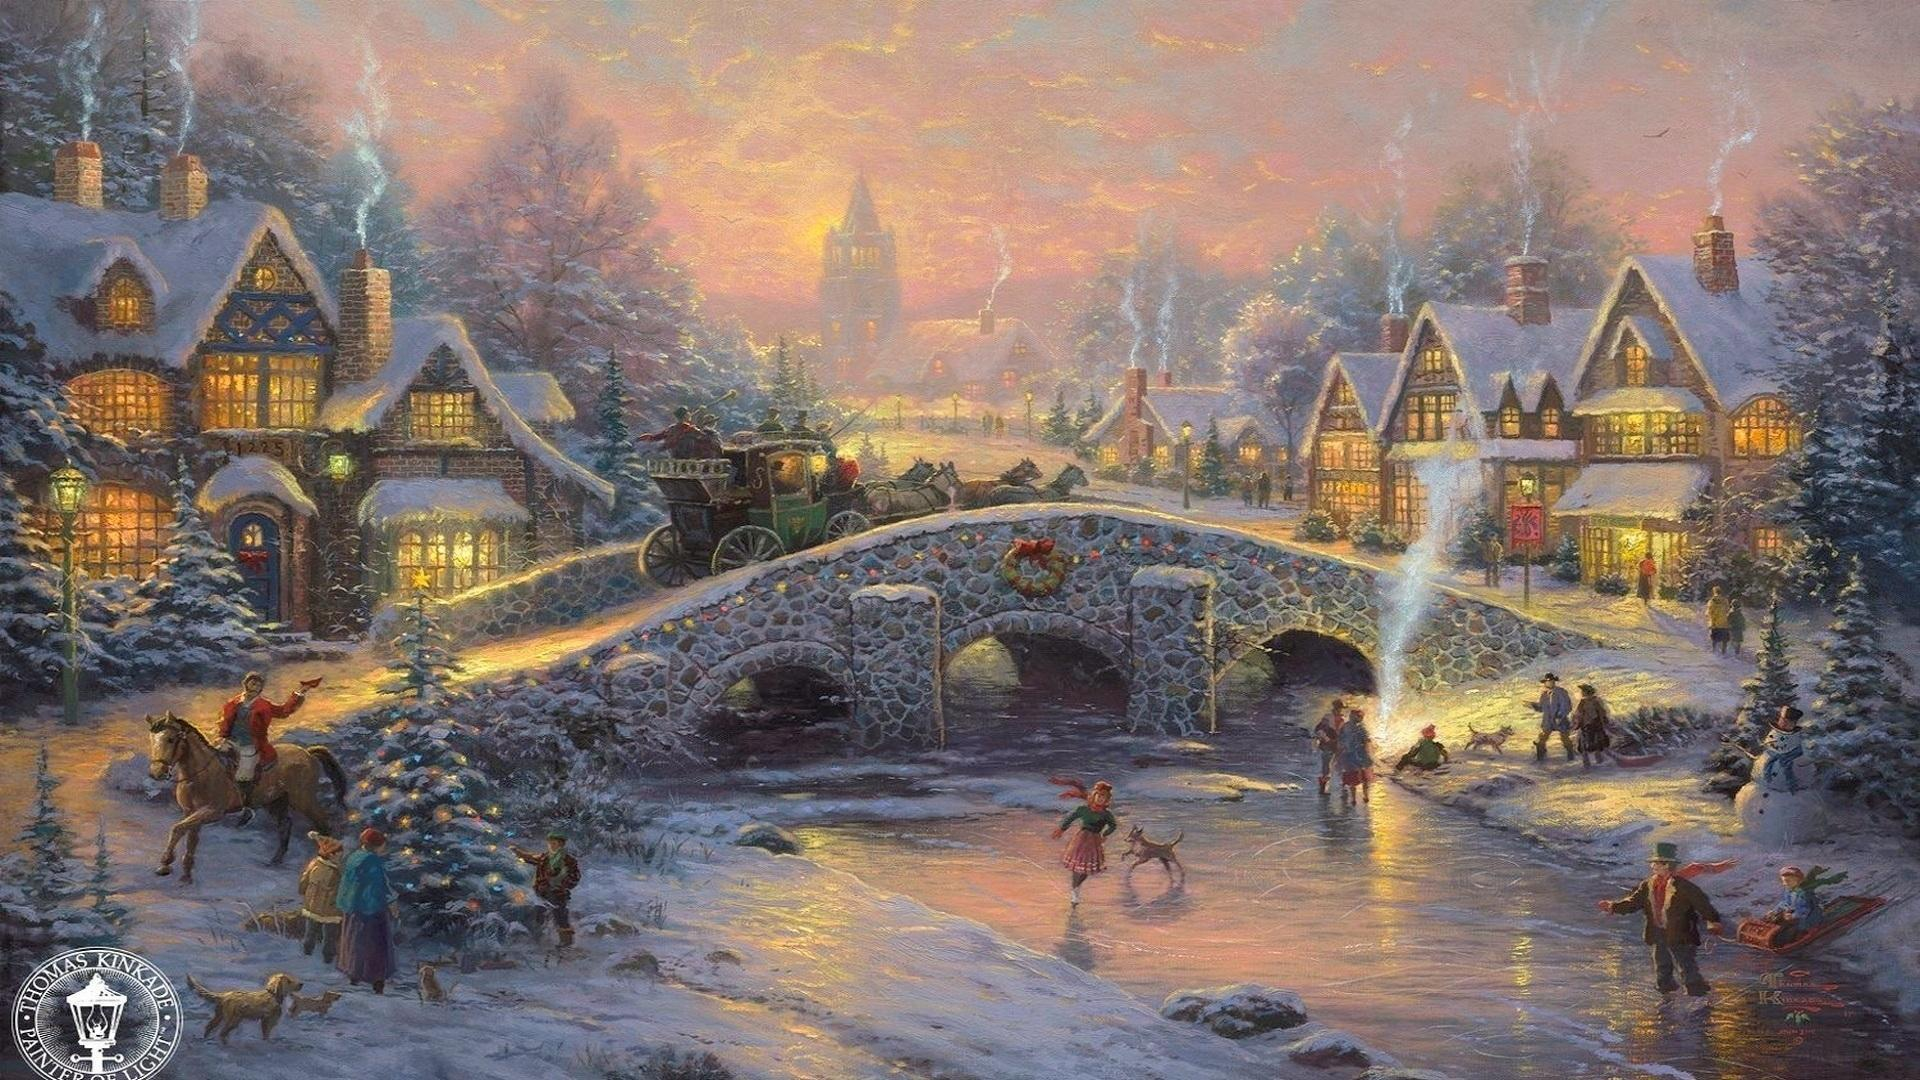 old fashioned christmas town wallpaper - photo #30